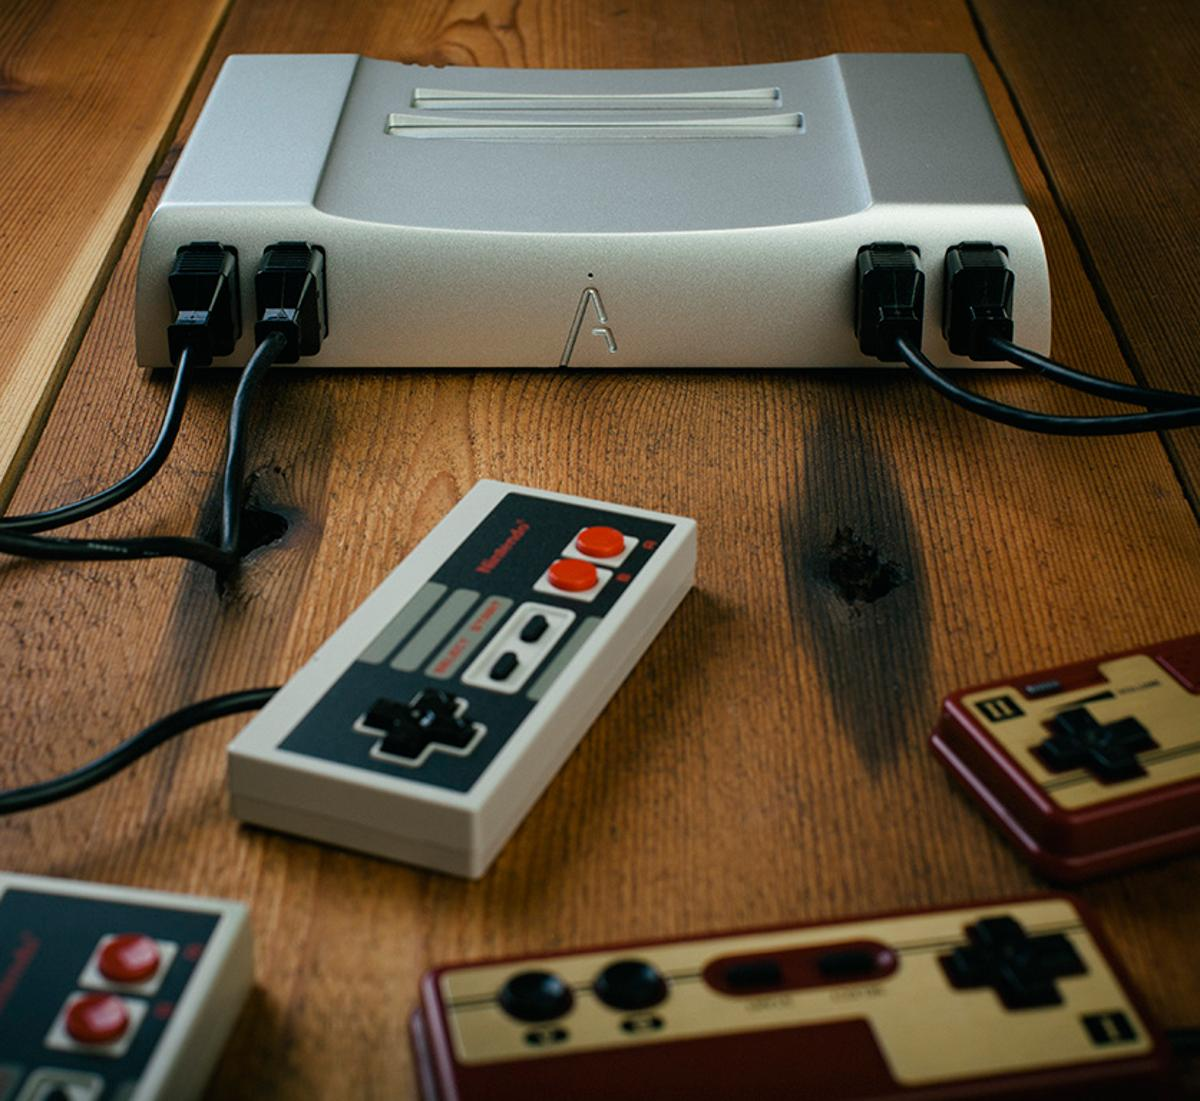 The Analogue Nt sports genuine NES guts